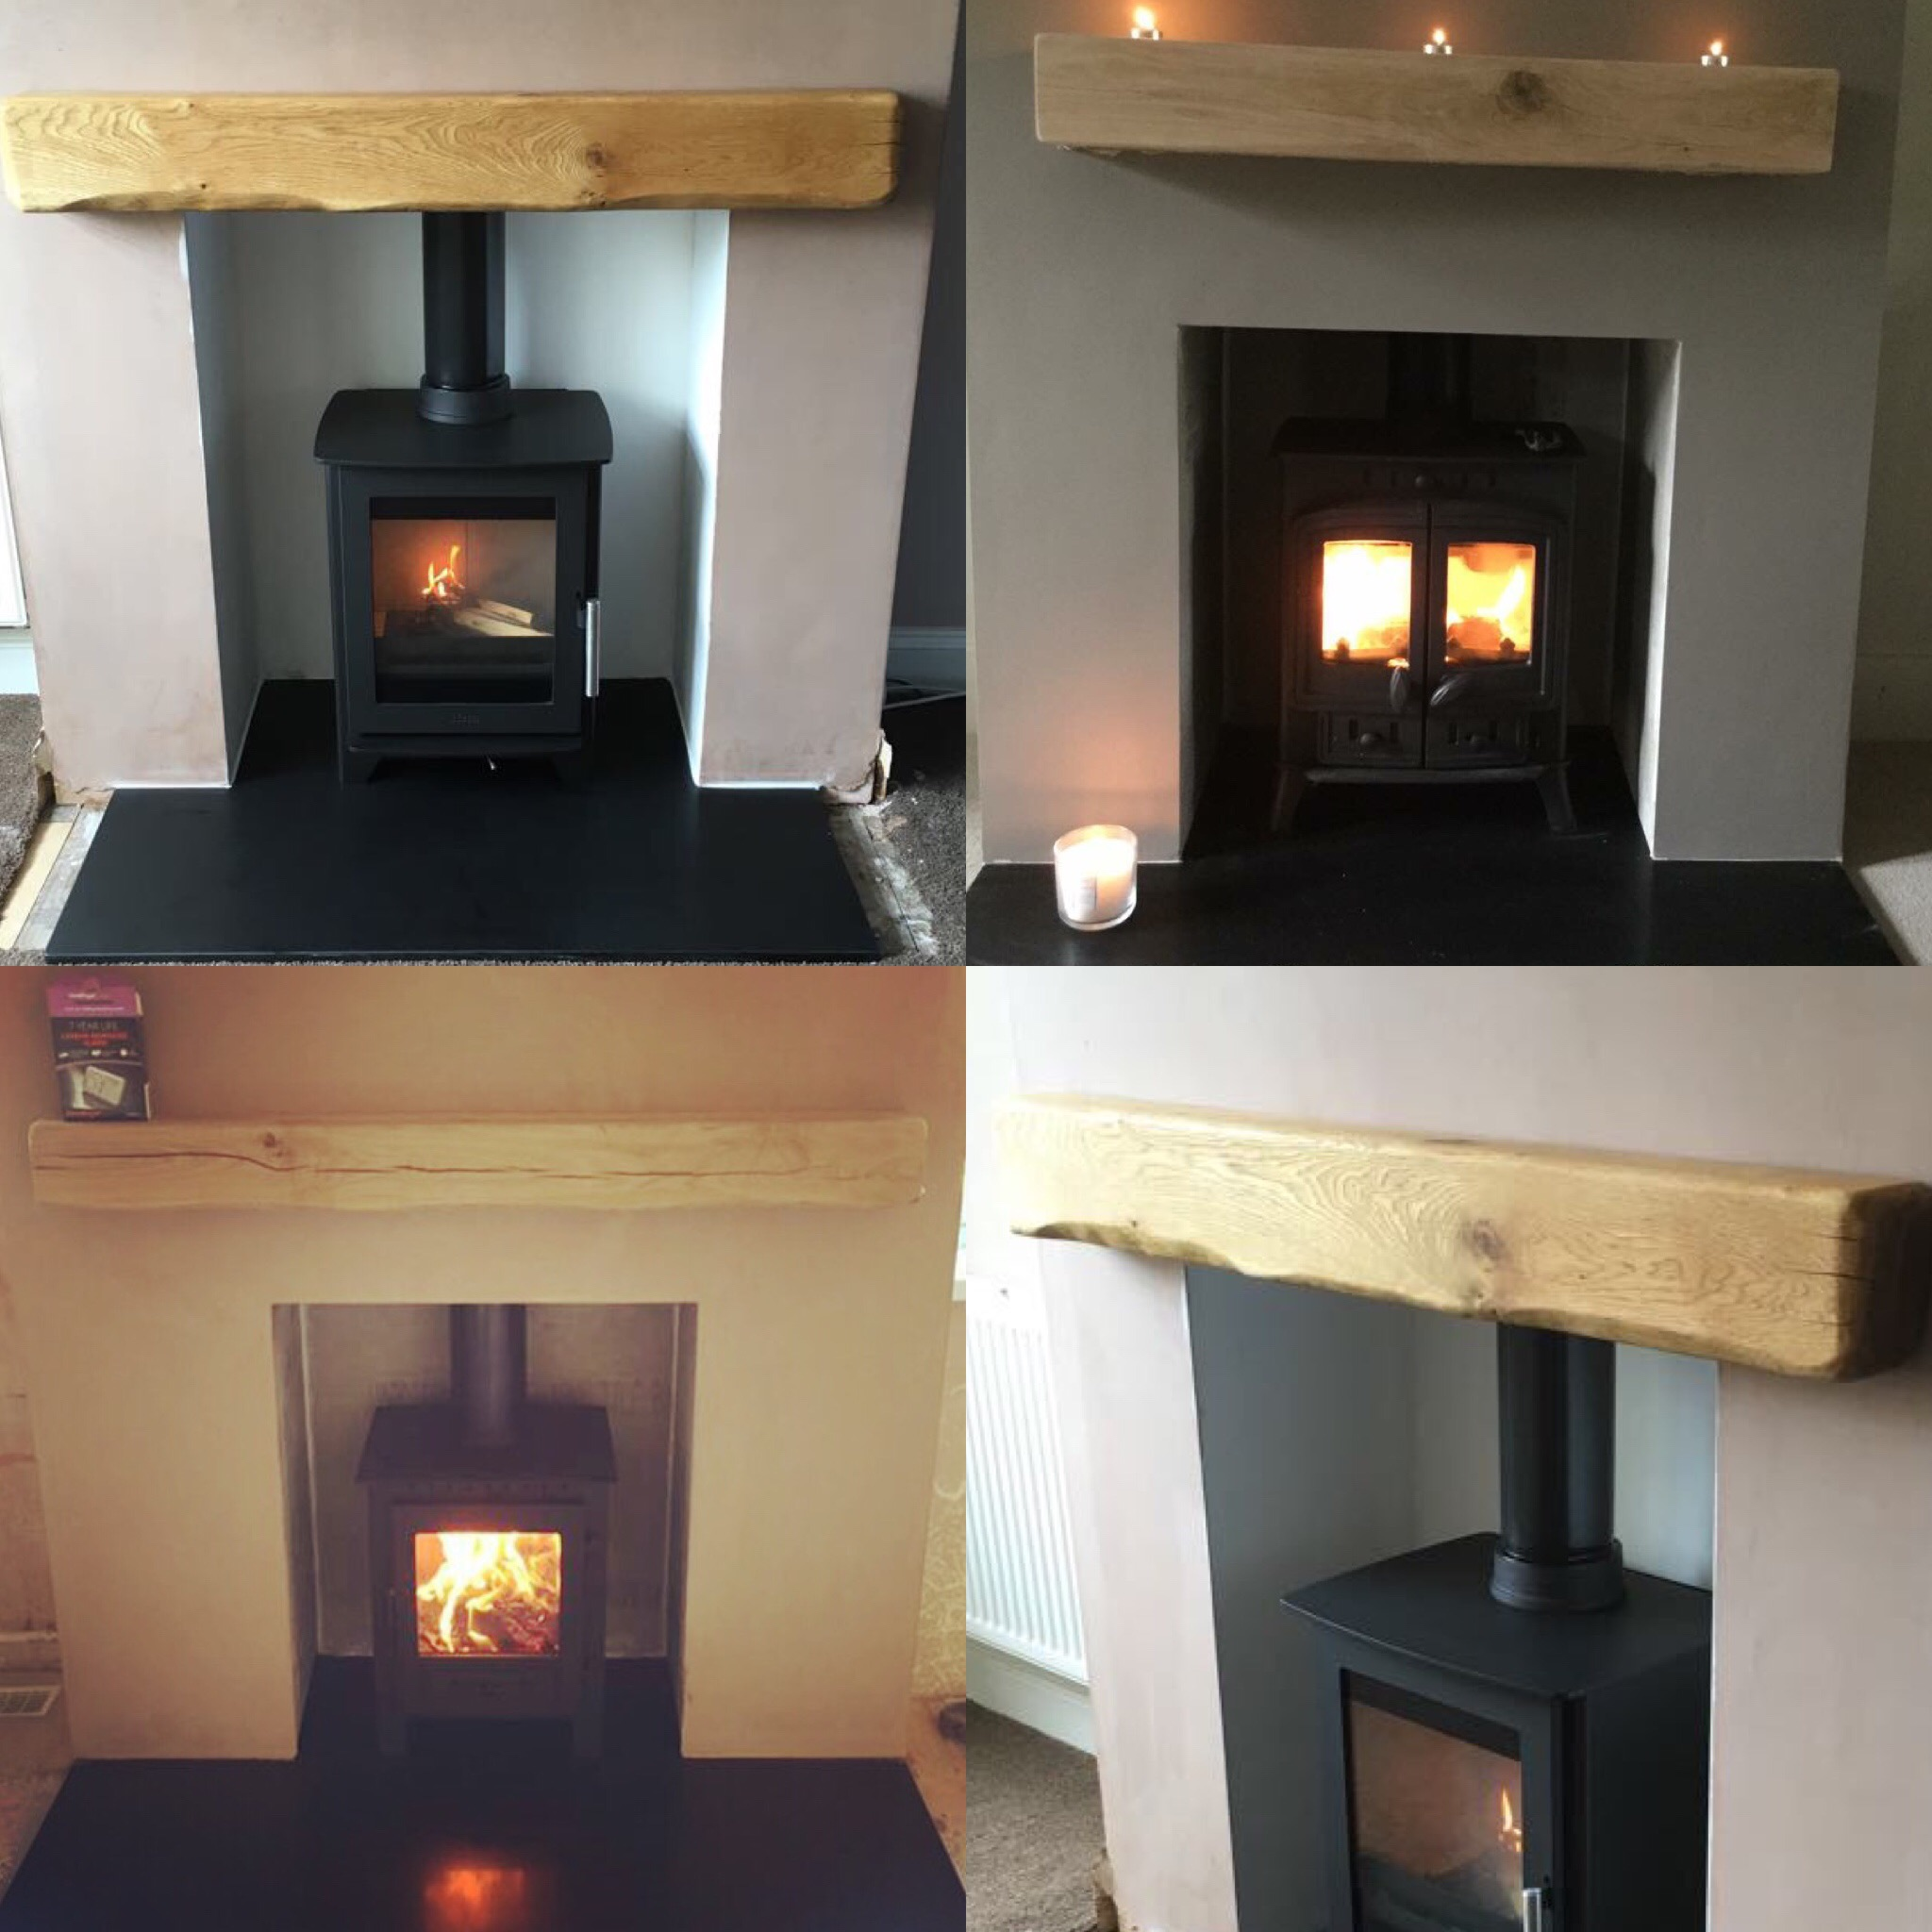 Fireplace Products The Portishead Stove Company